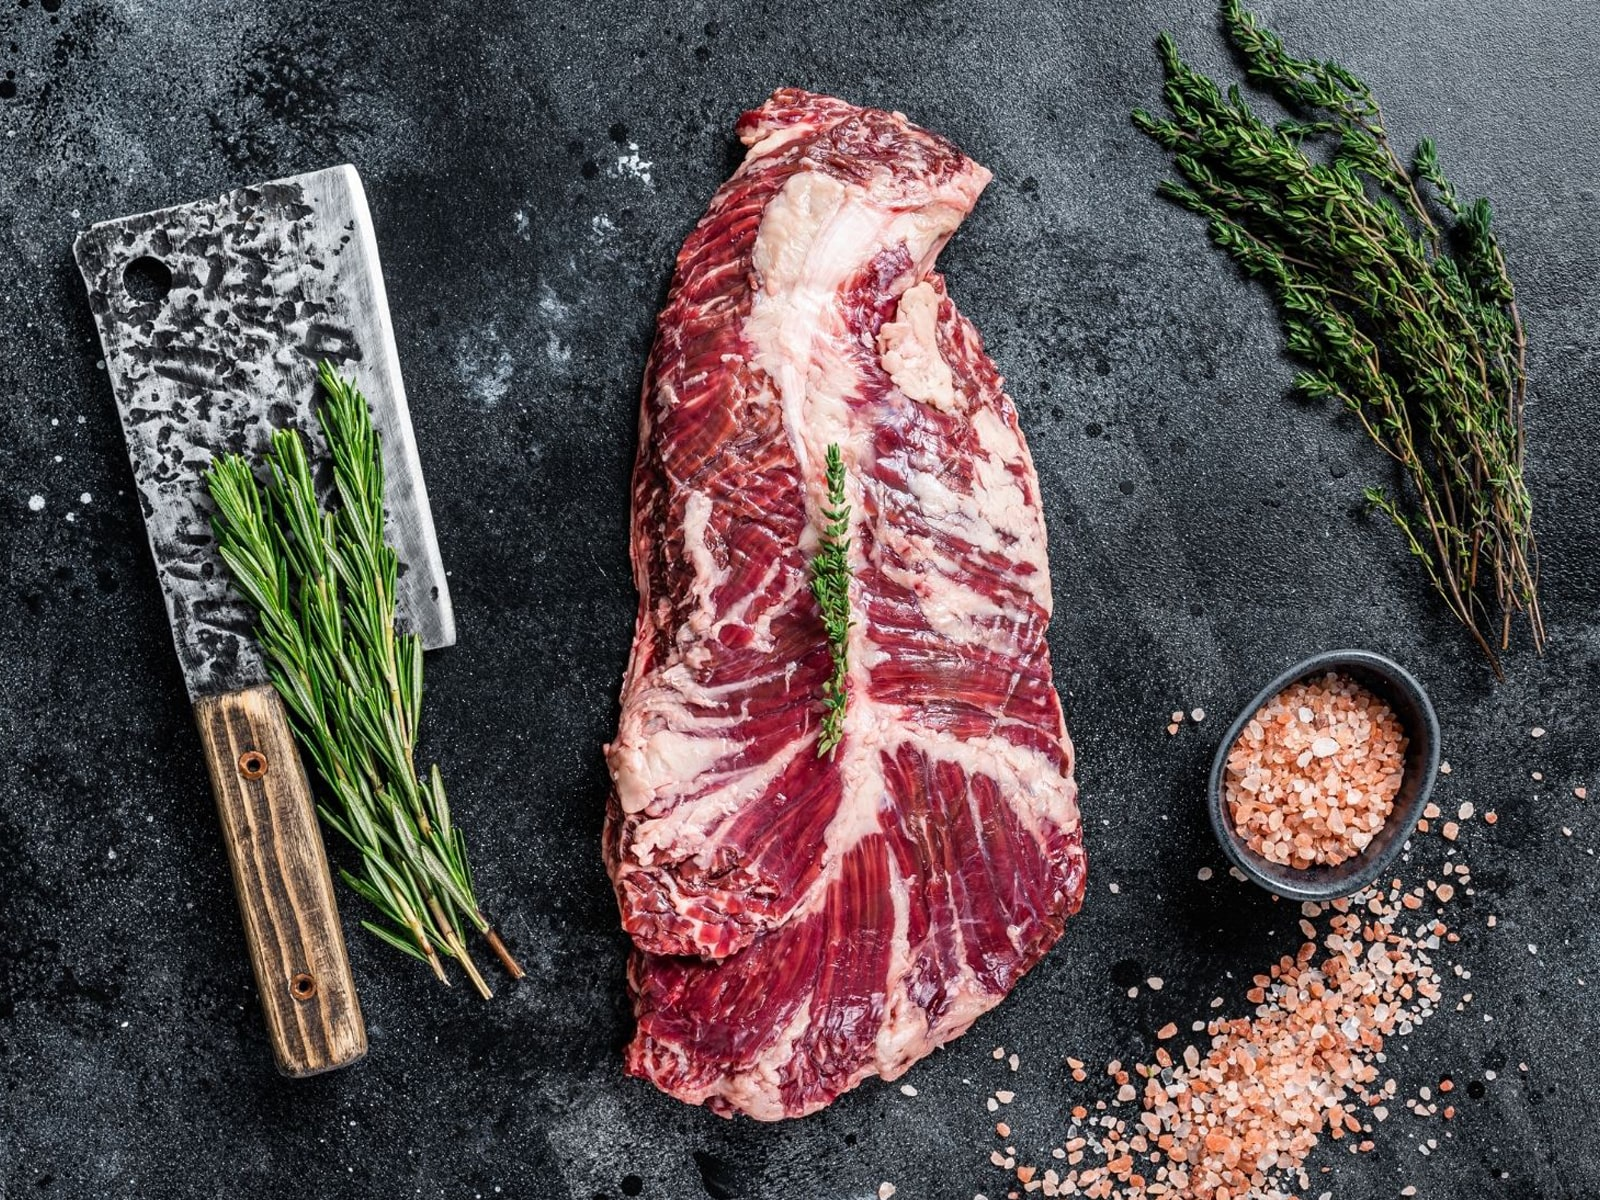 Our Top 5 Most Underrated Steaks Everyone Should Try - Hanger Steak - Beck & Bulow